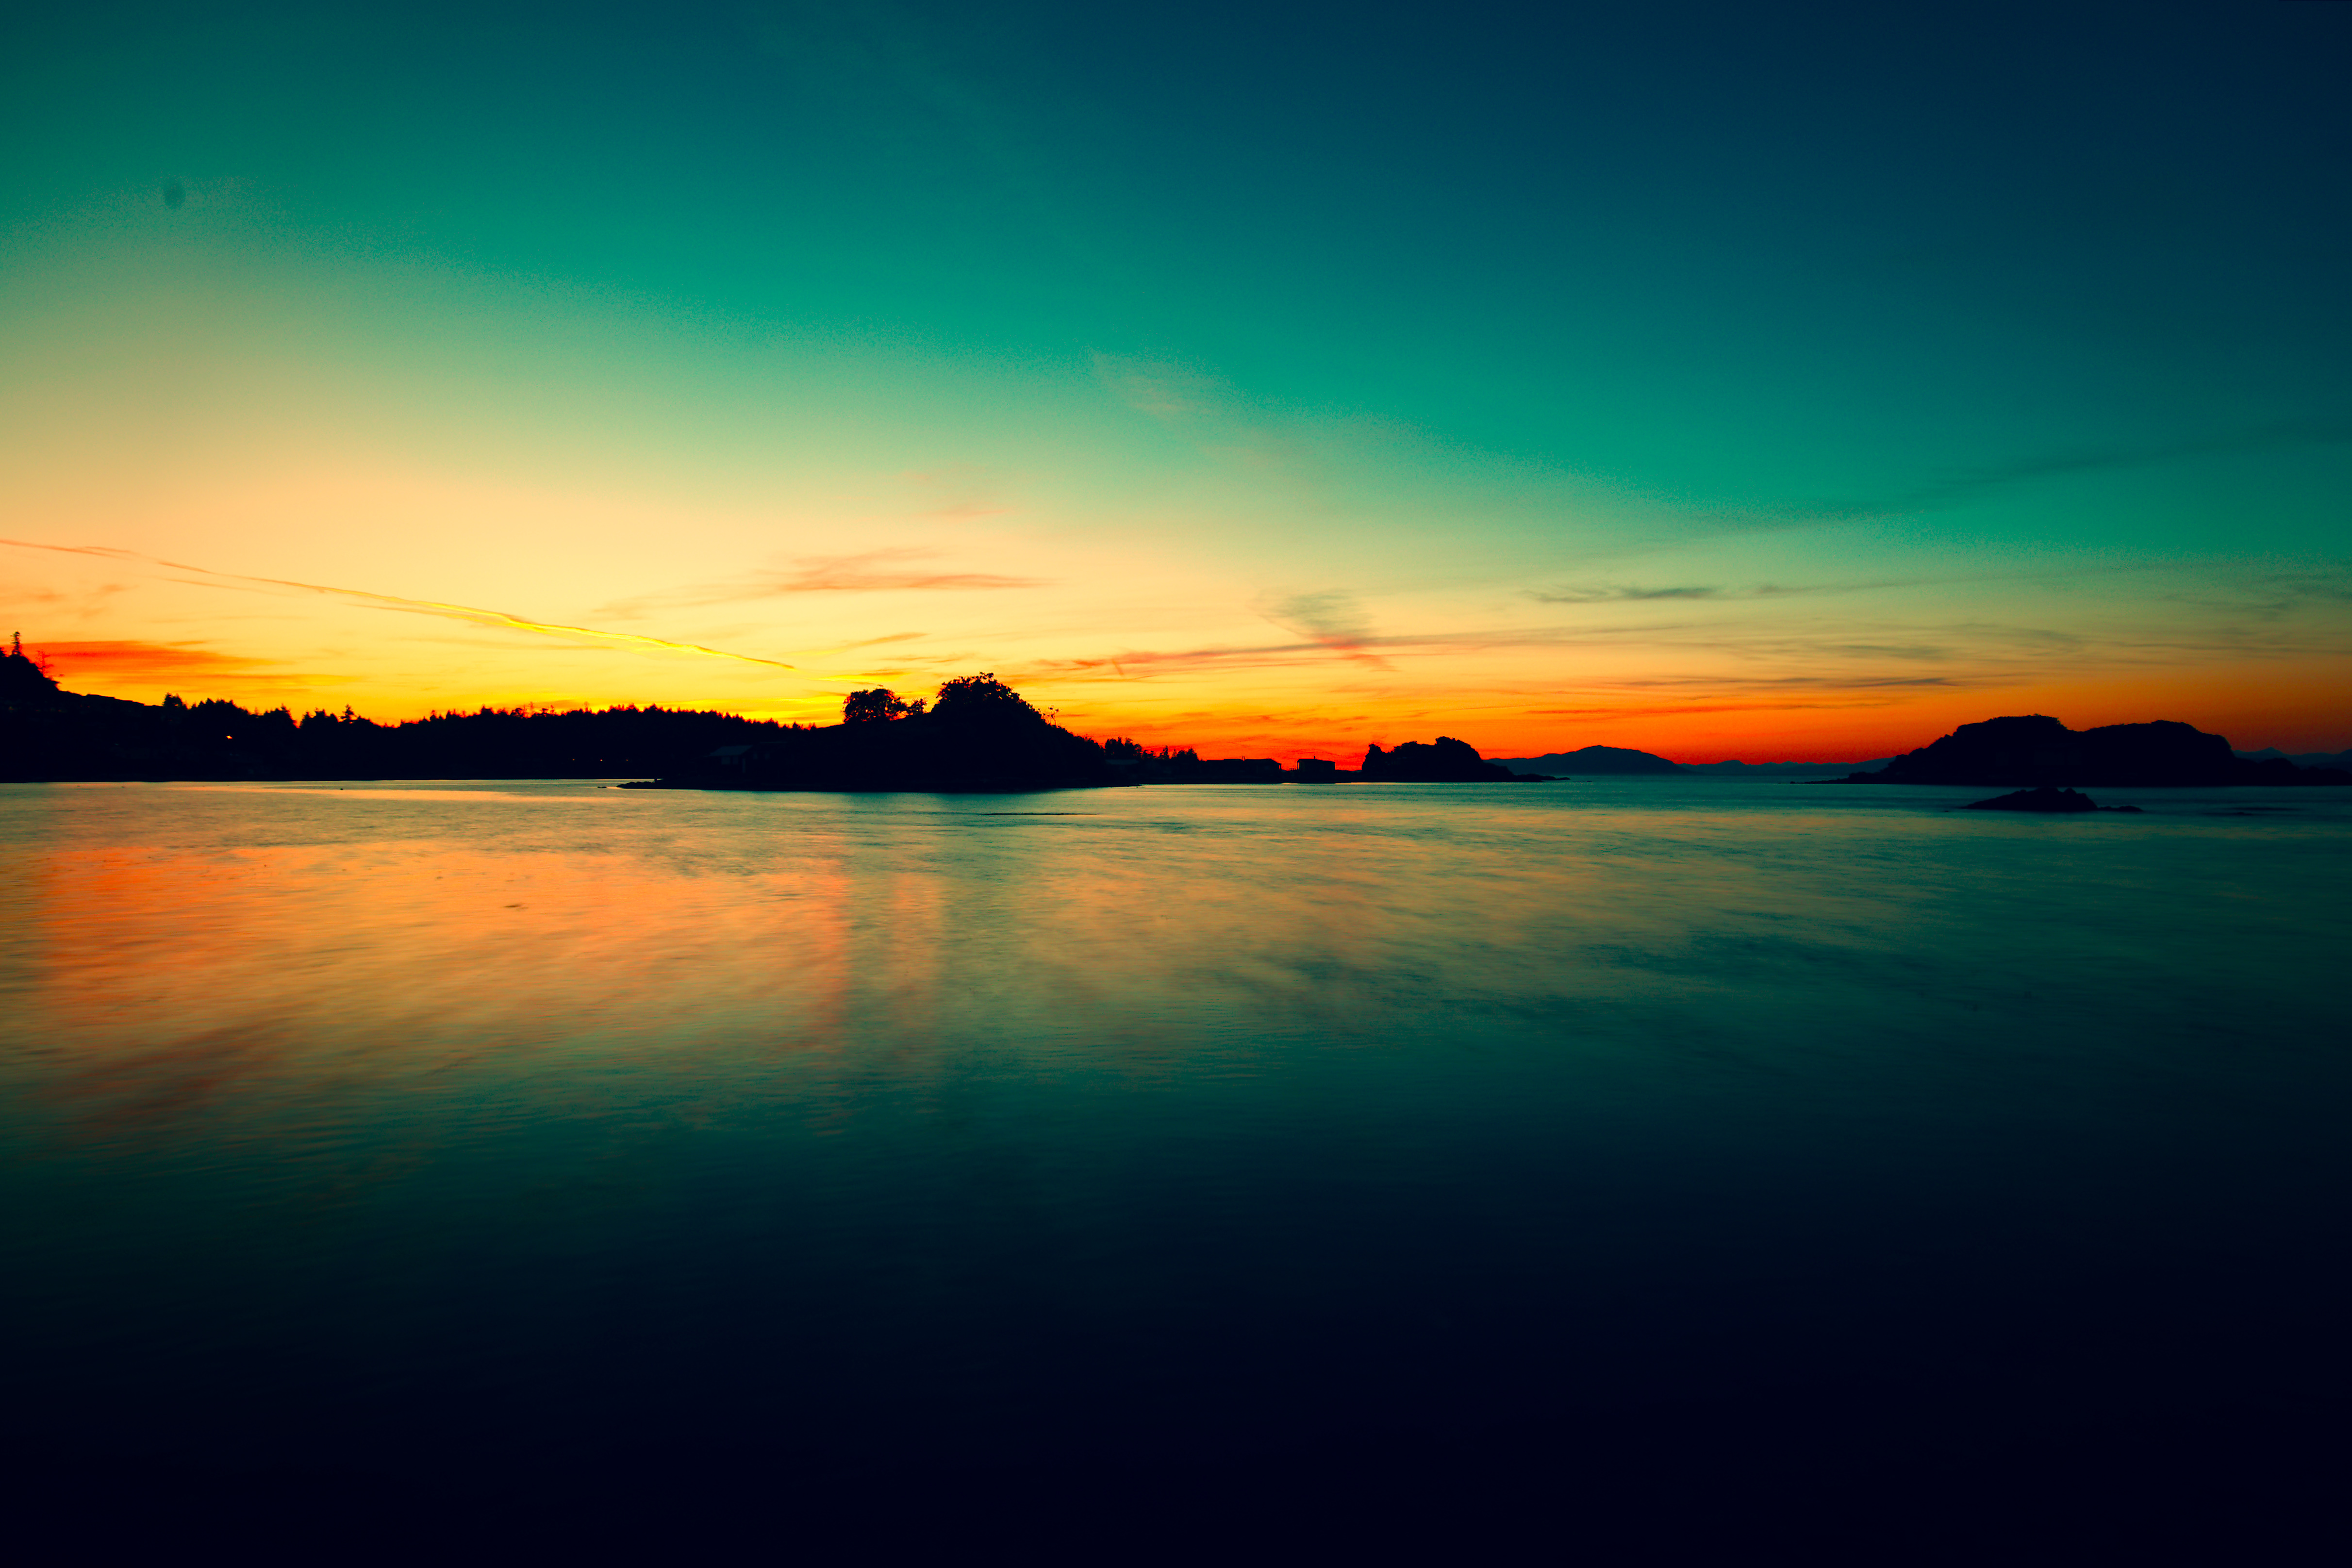 Let there be Saturation, Beach, Cloud, Coast, Dusk, HQ Photo